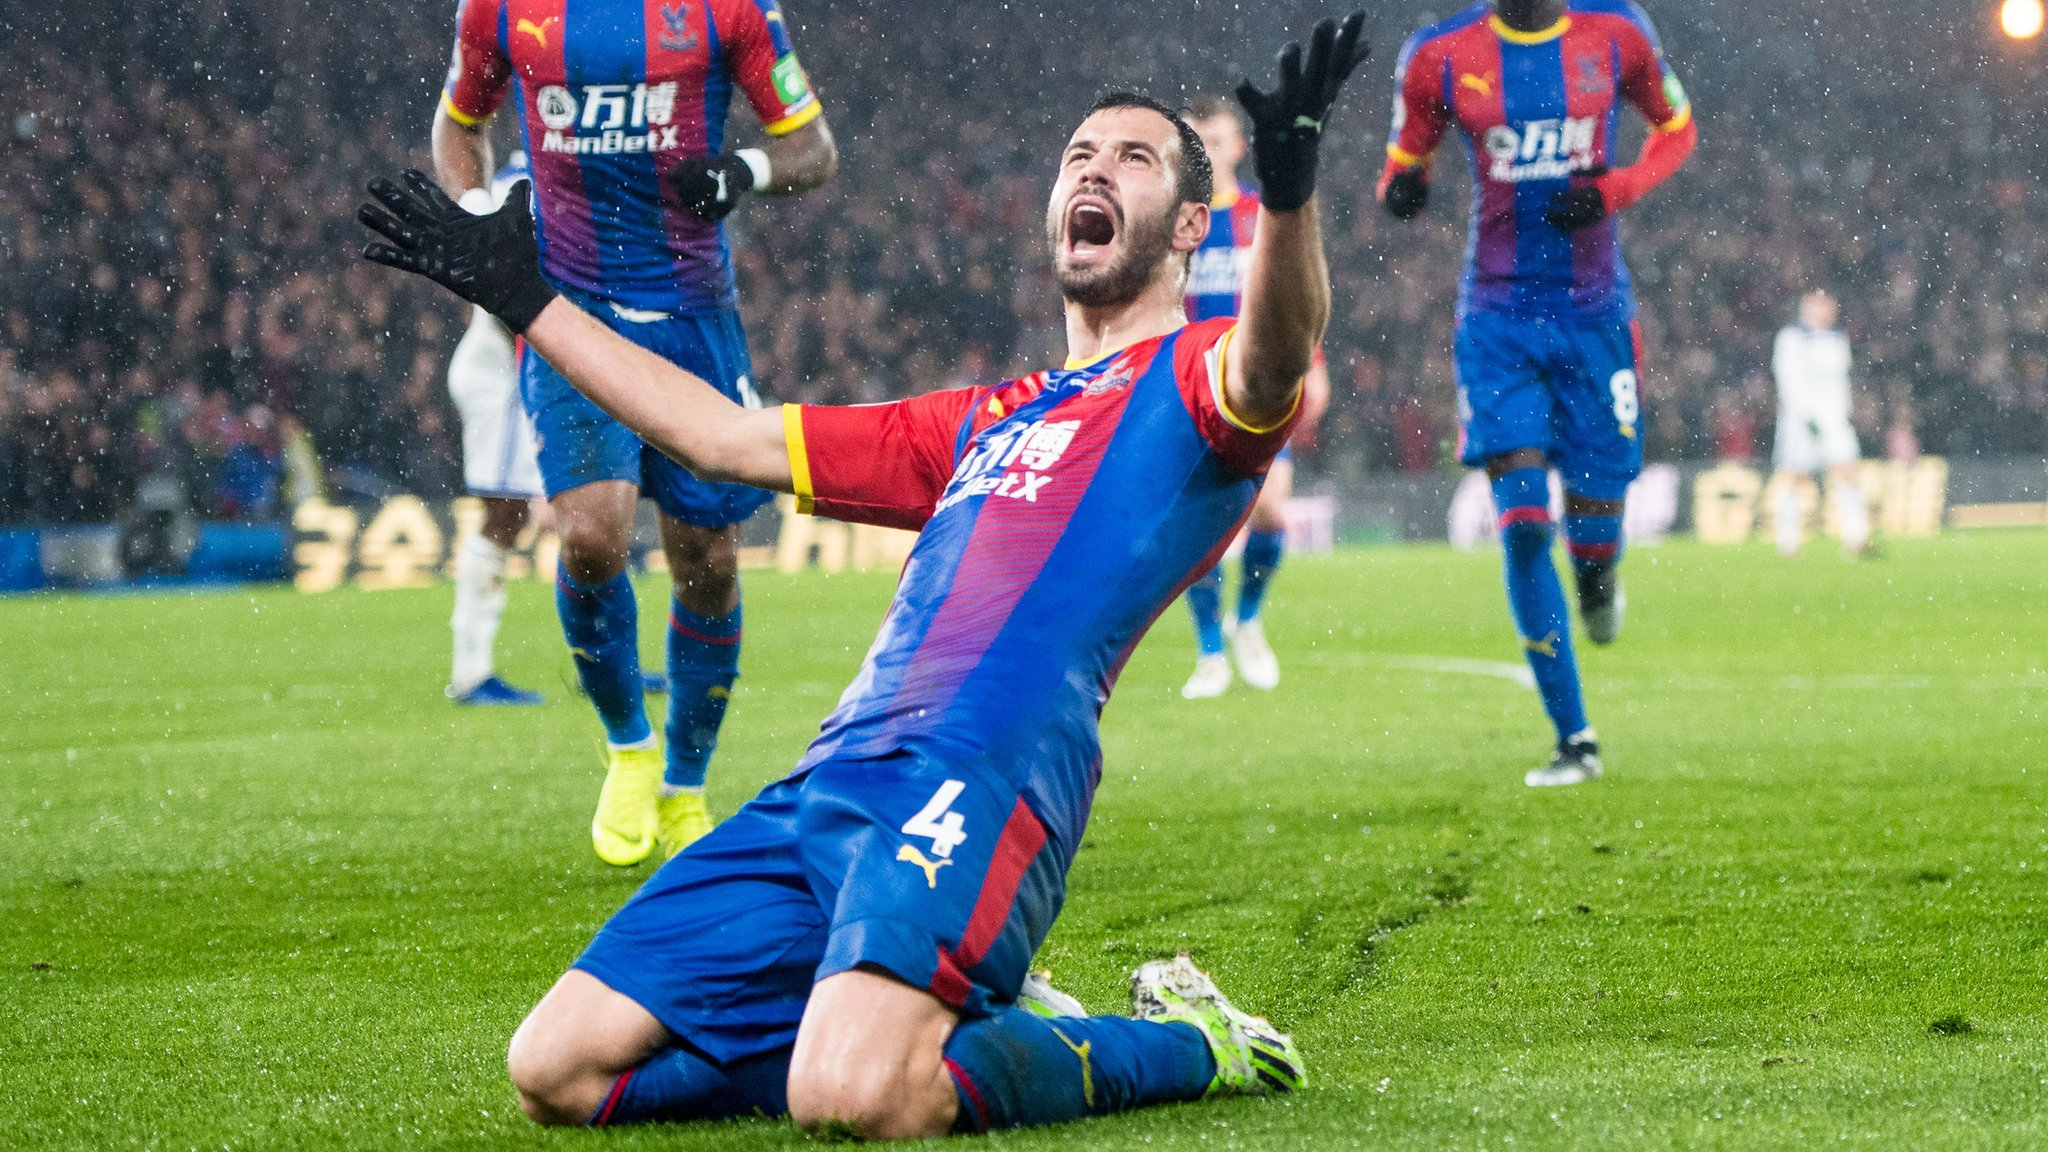 Crystal Palace 1-0 Leicester: Luka Milivojevic earns Eagles win